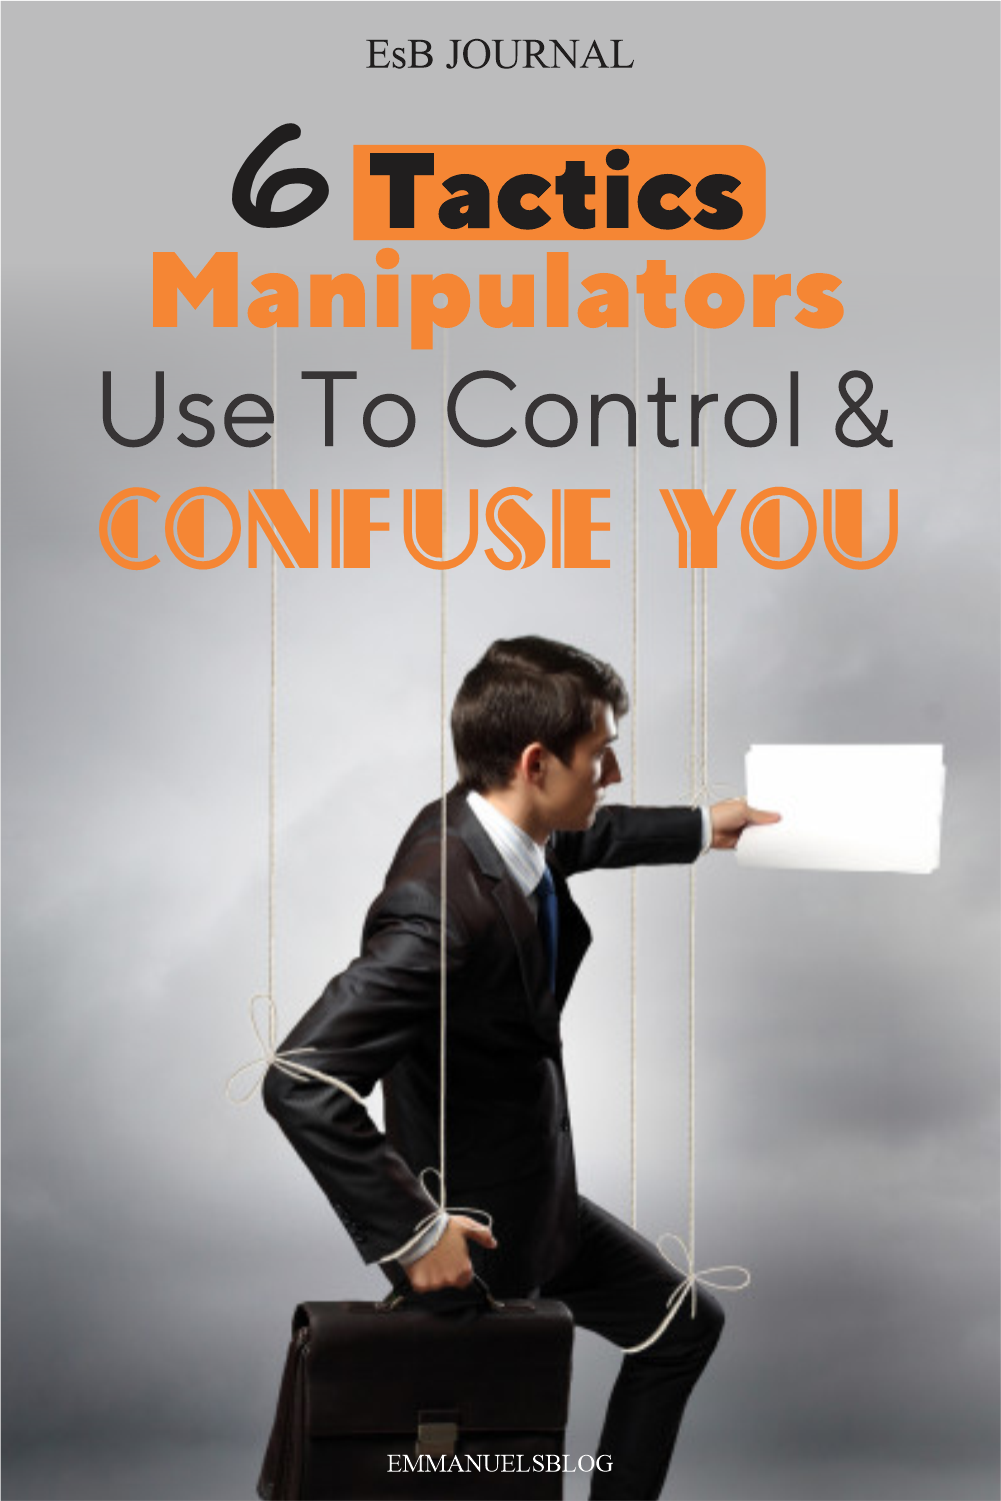 6 Tactics Manipulators Use to Get Close to you, Control and confuse you